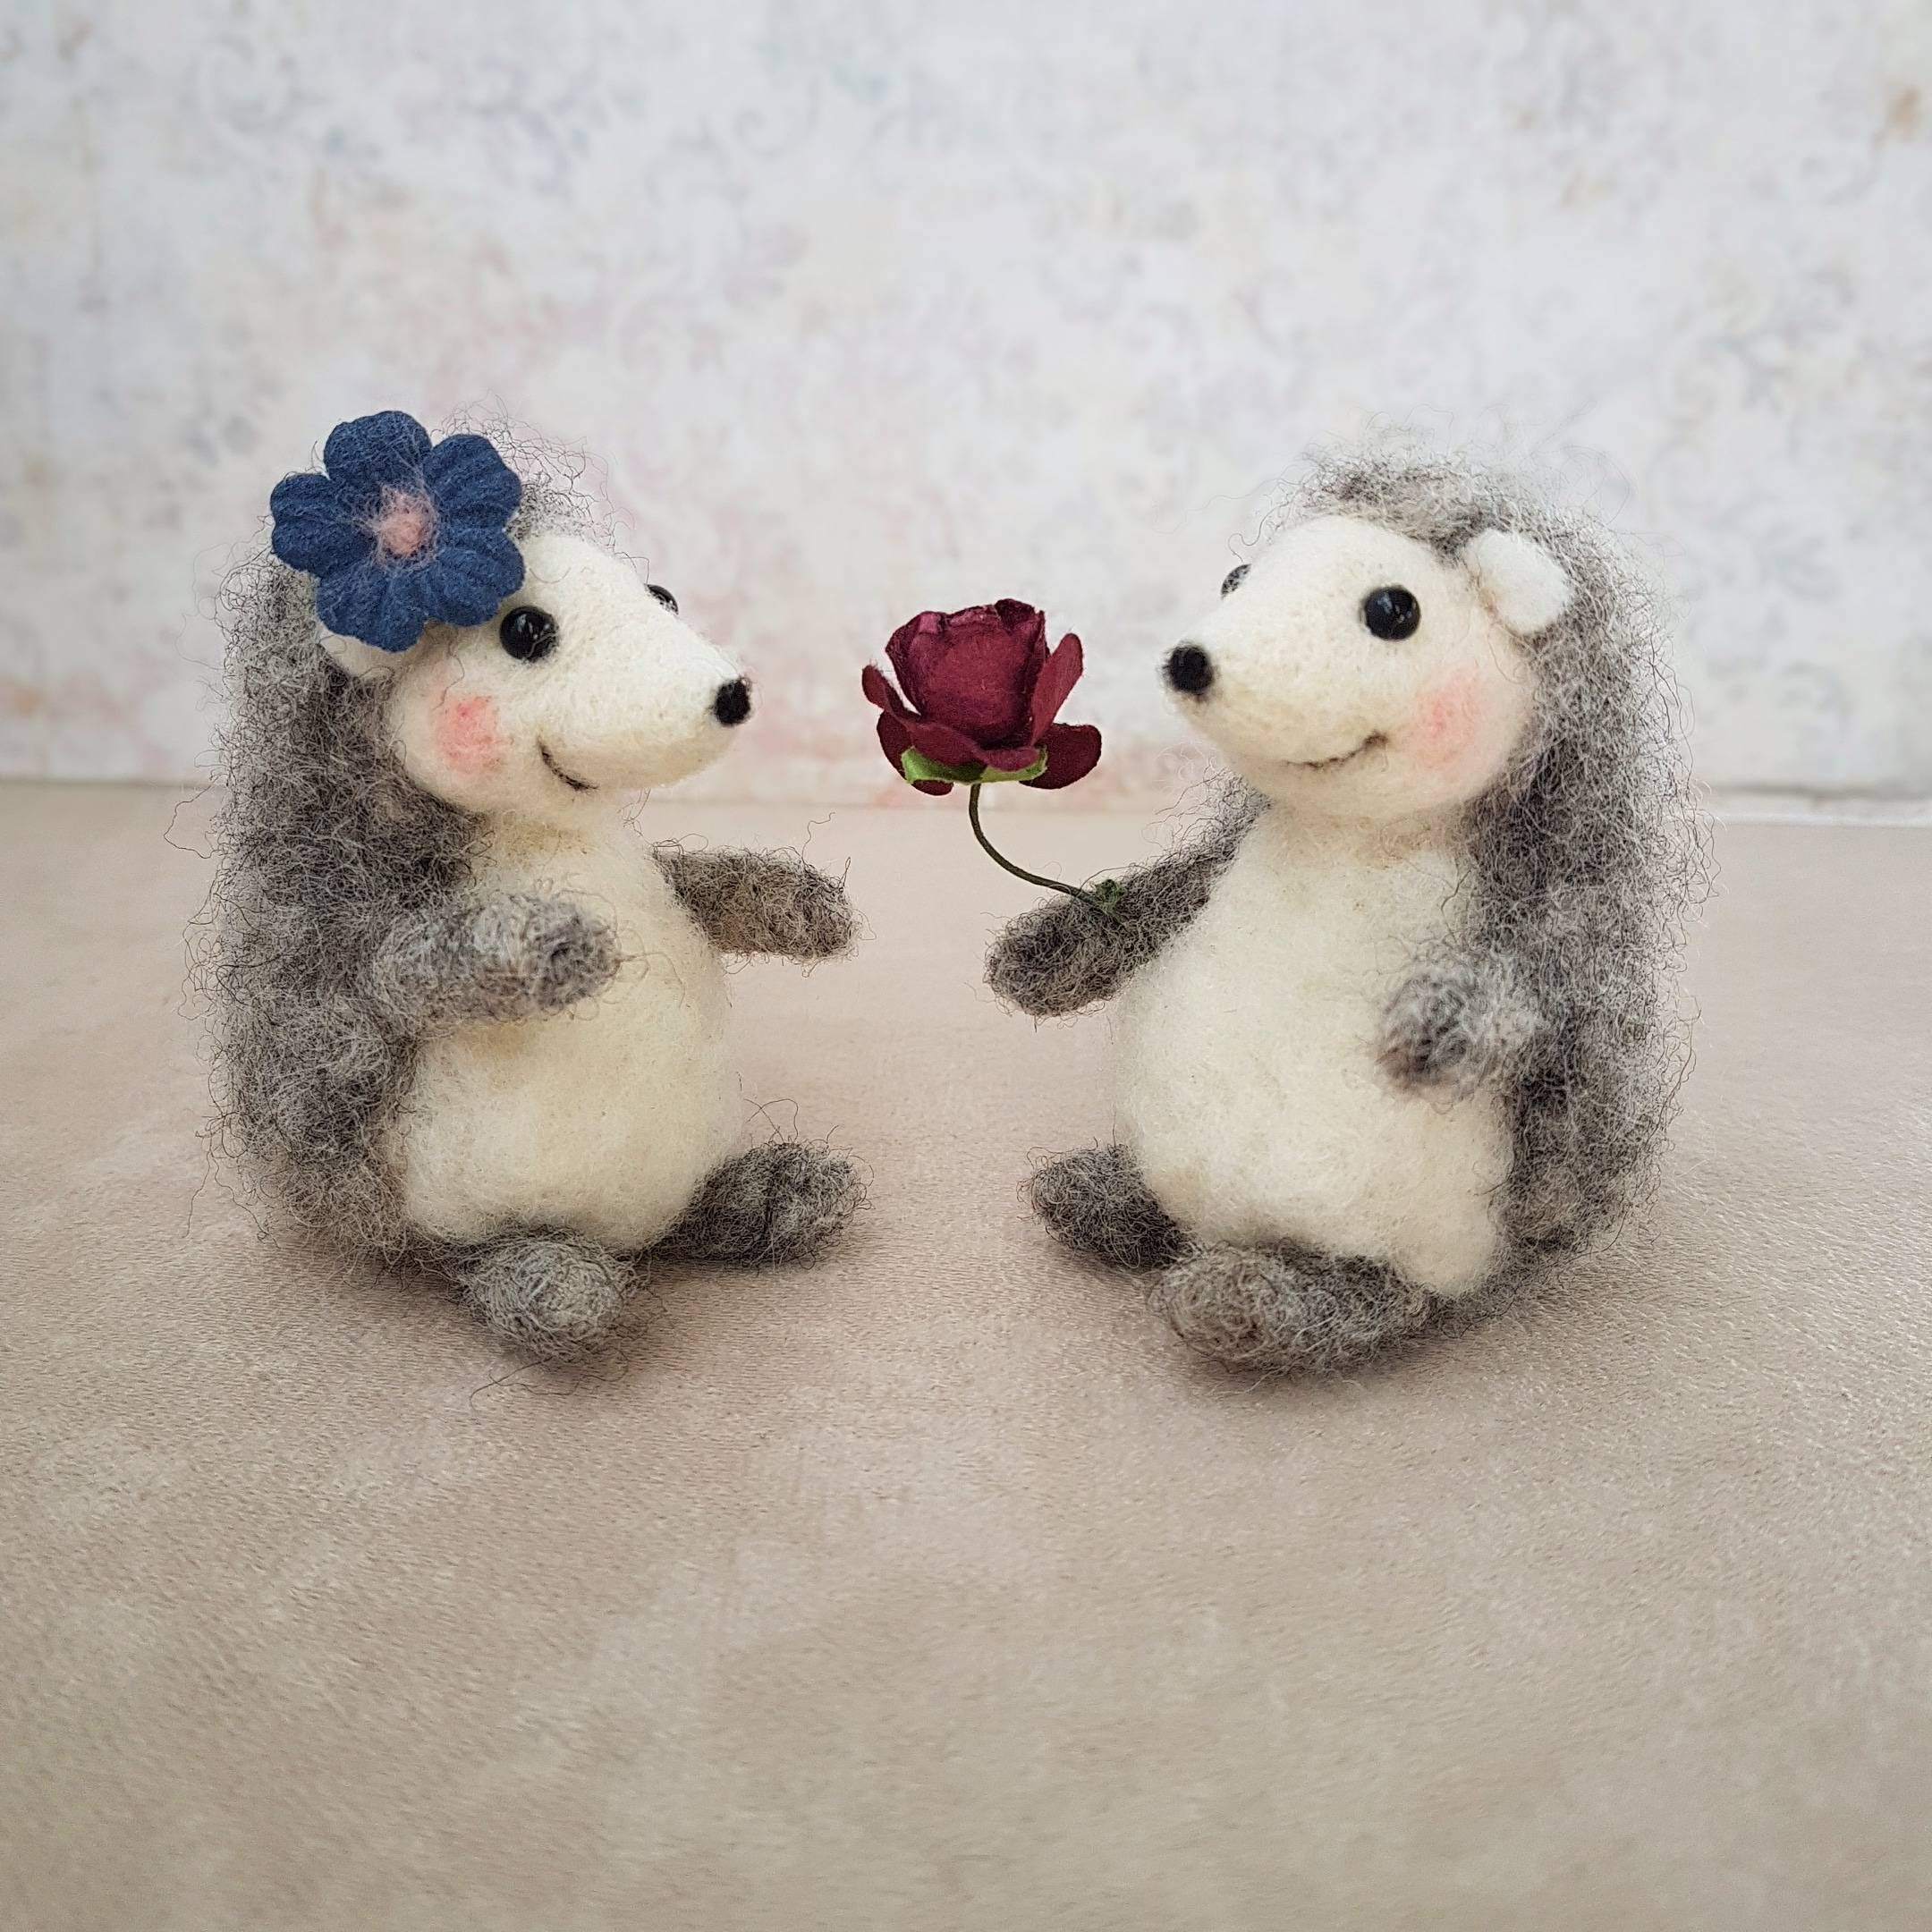 Felted hedgehog, Hedgehog gifts, 5th anniversary gift, Couple gifts, Art doll animal, Felted wool animals, Unique wedding cake topper #feltedwoolanimals